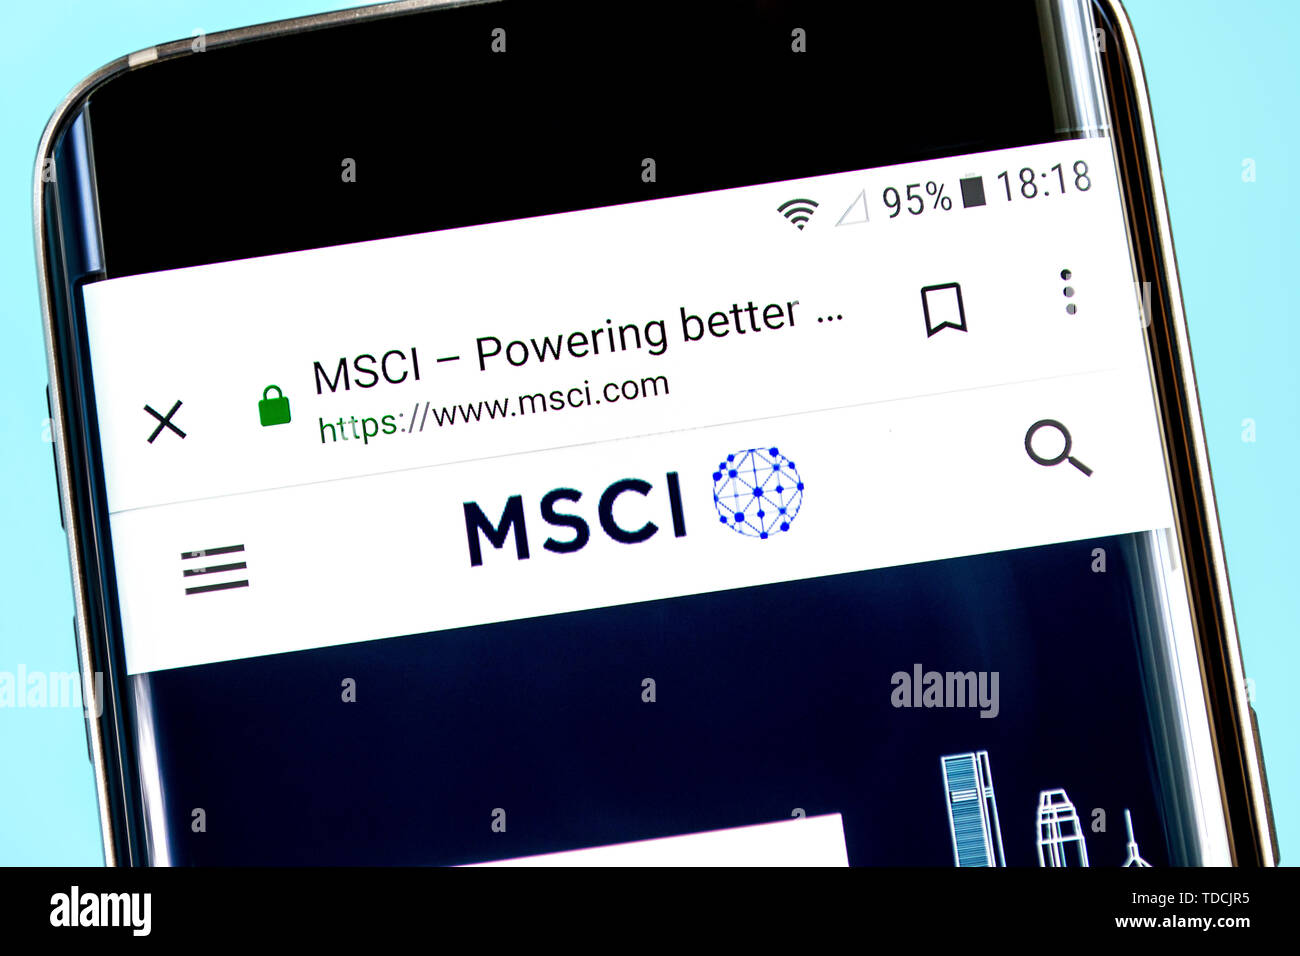 Berdyansk, Ukraine - 8 June 2019: MSCI website homepage. MSCI logo visible on the phone screen, Illustrative Editorial - Stock Image